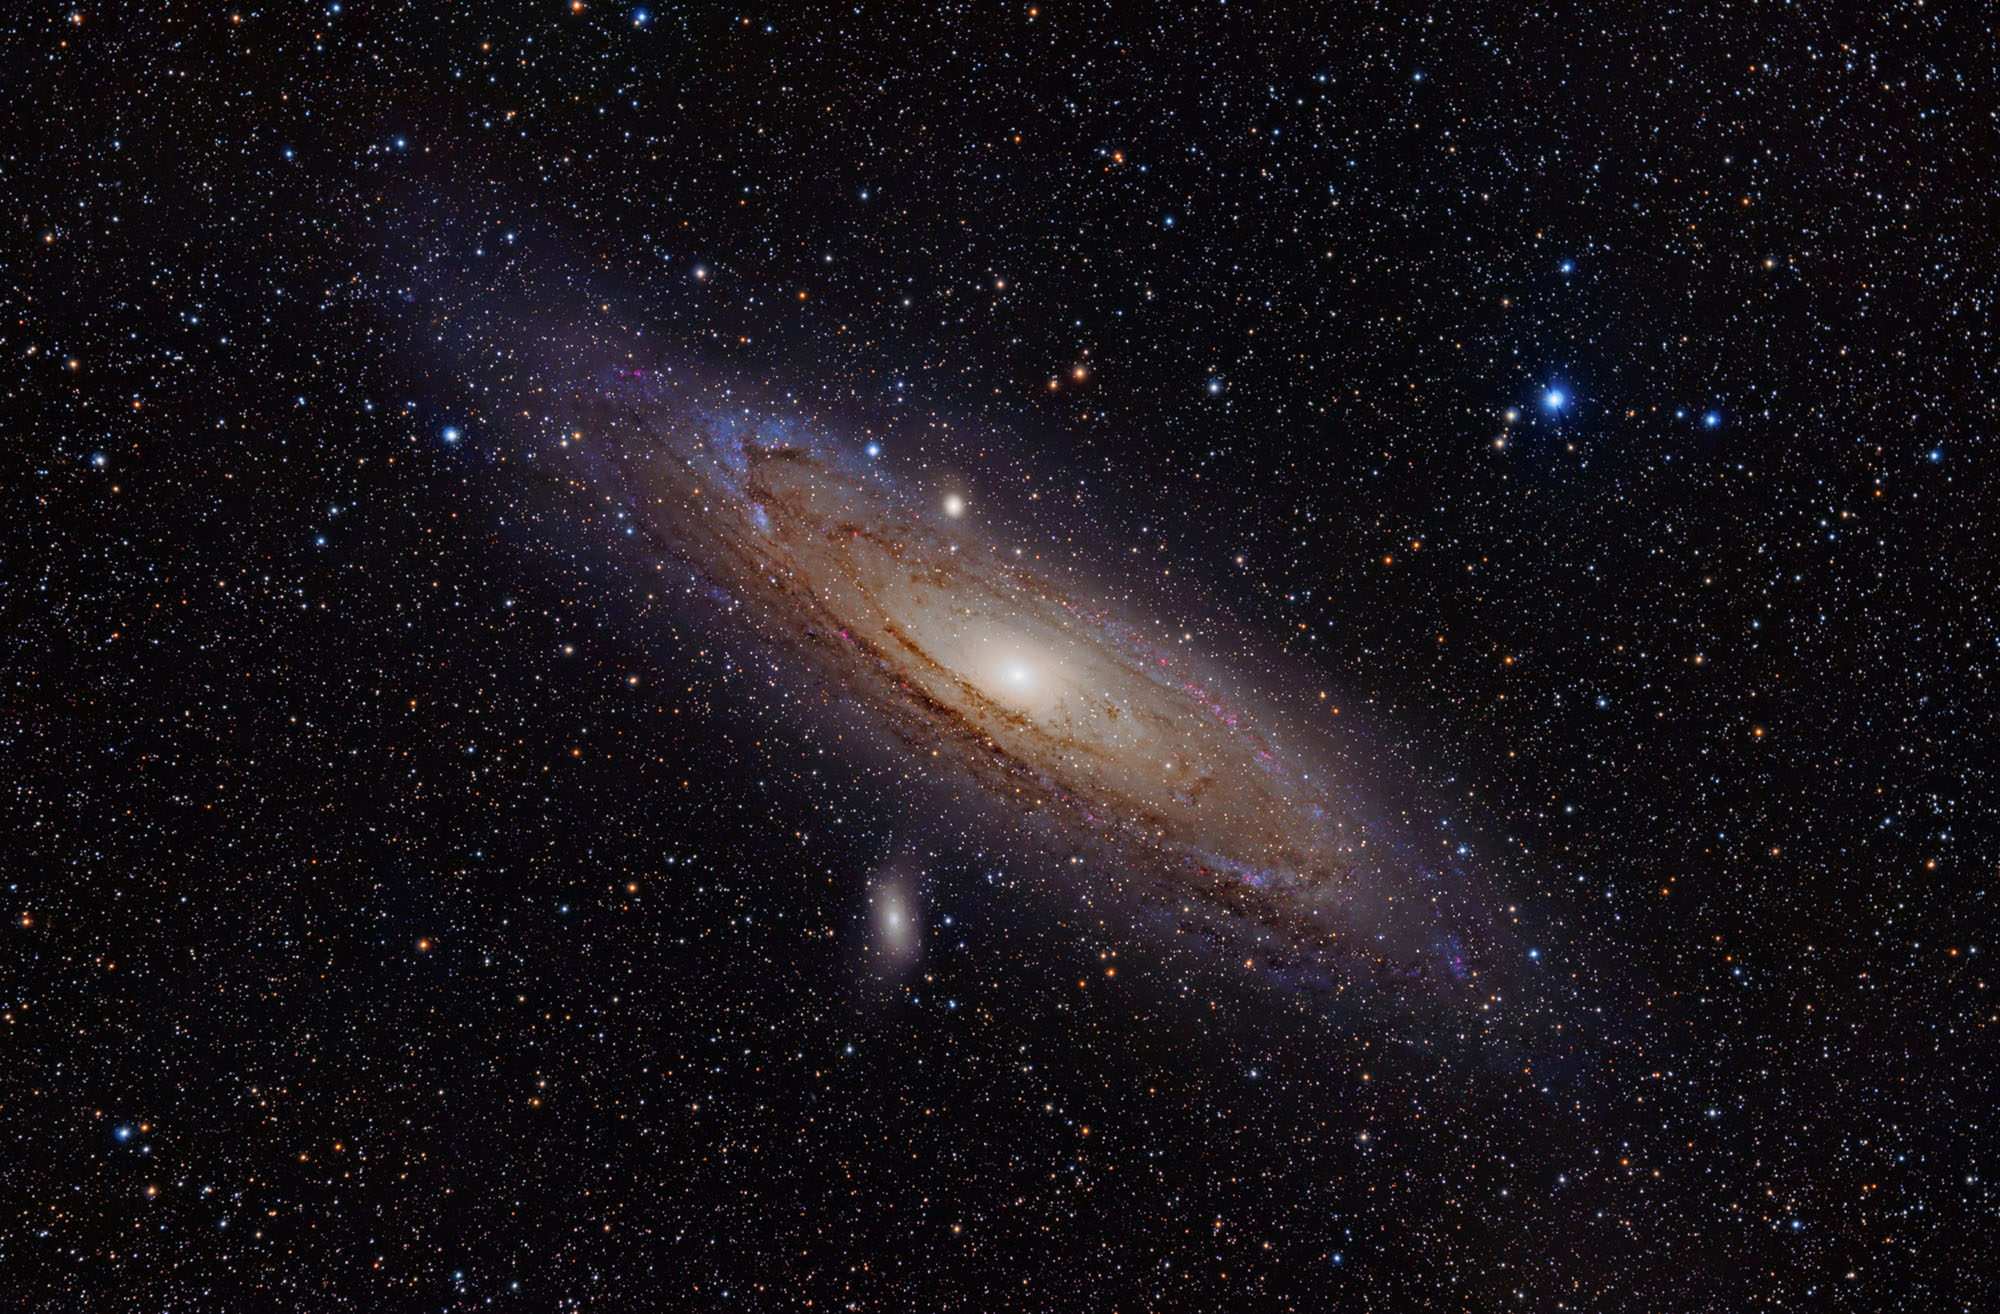 Our nearest galactic neighbour, The Andromeda Galaxy, 2.5 million light years away